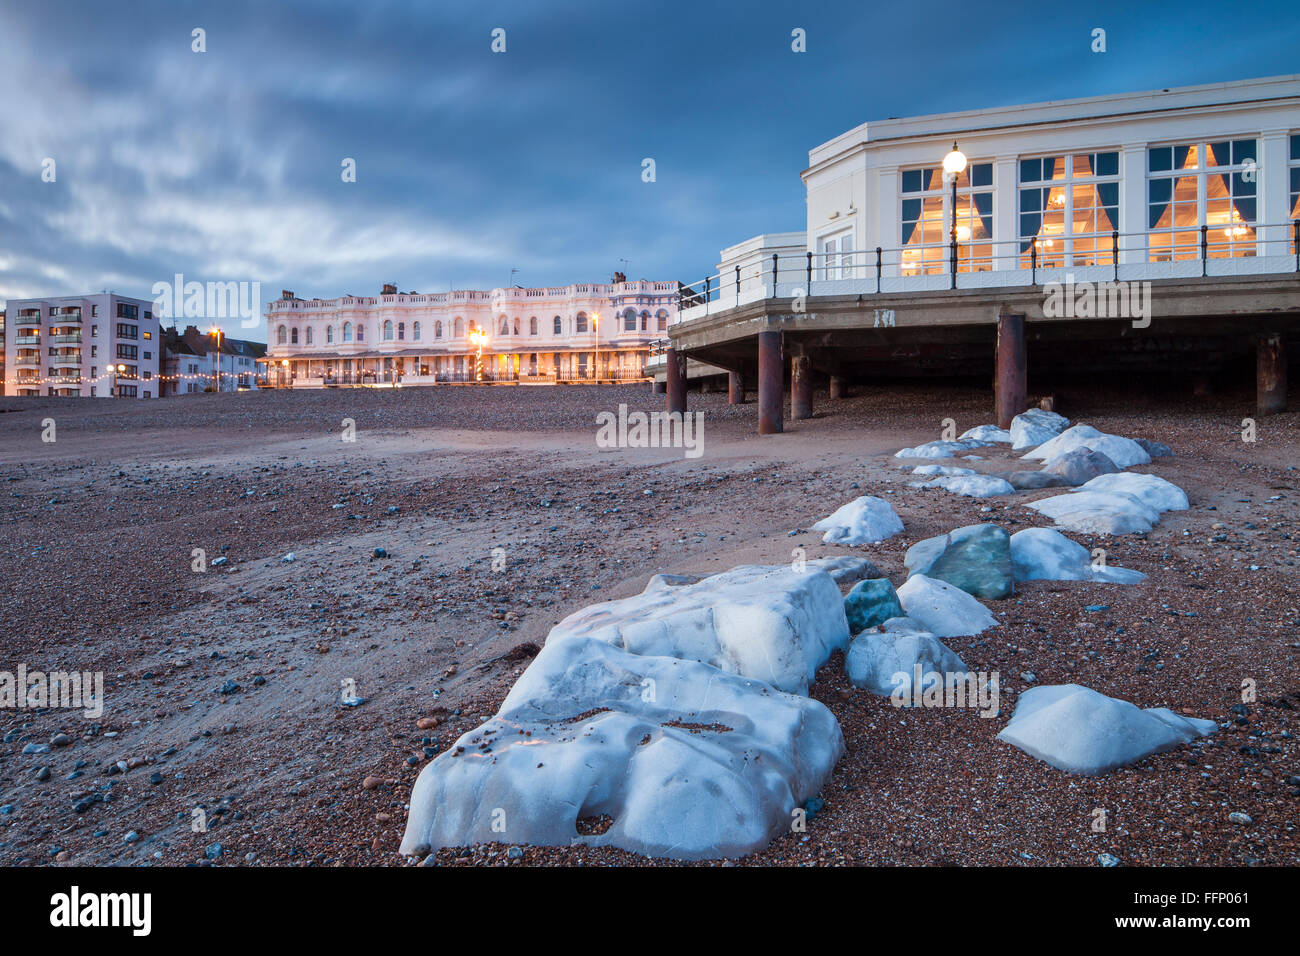 Winter evening at Worthing beach, West Sussex, England. Stock Photo